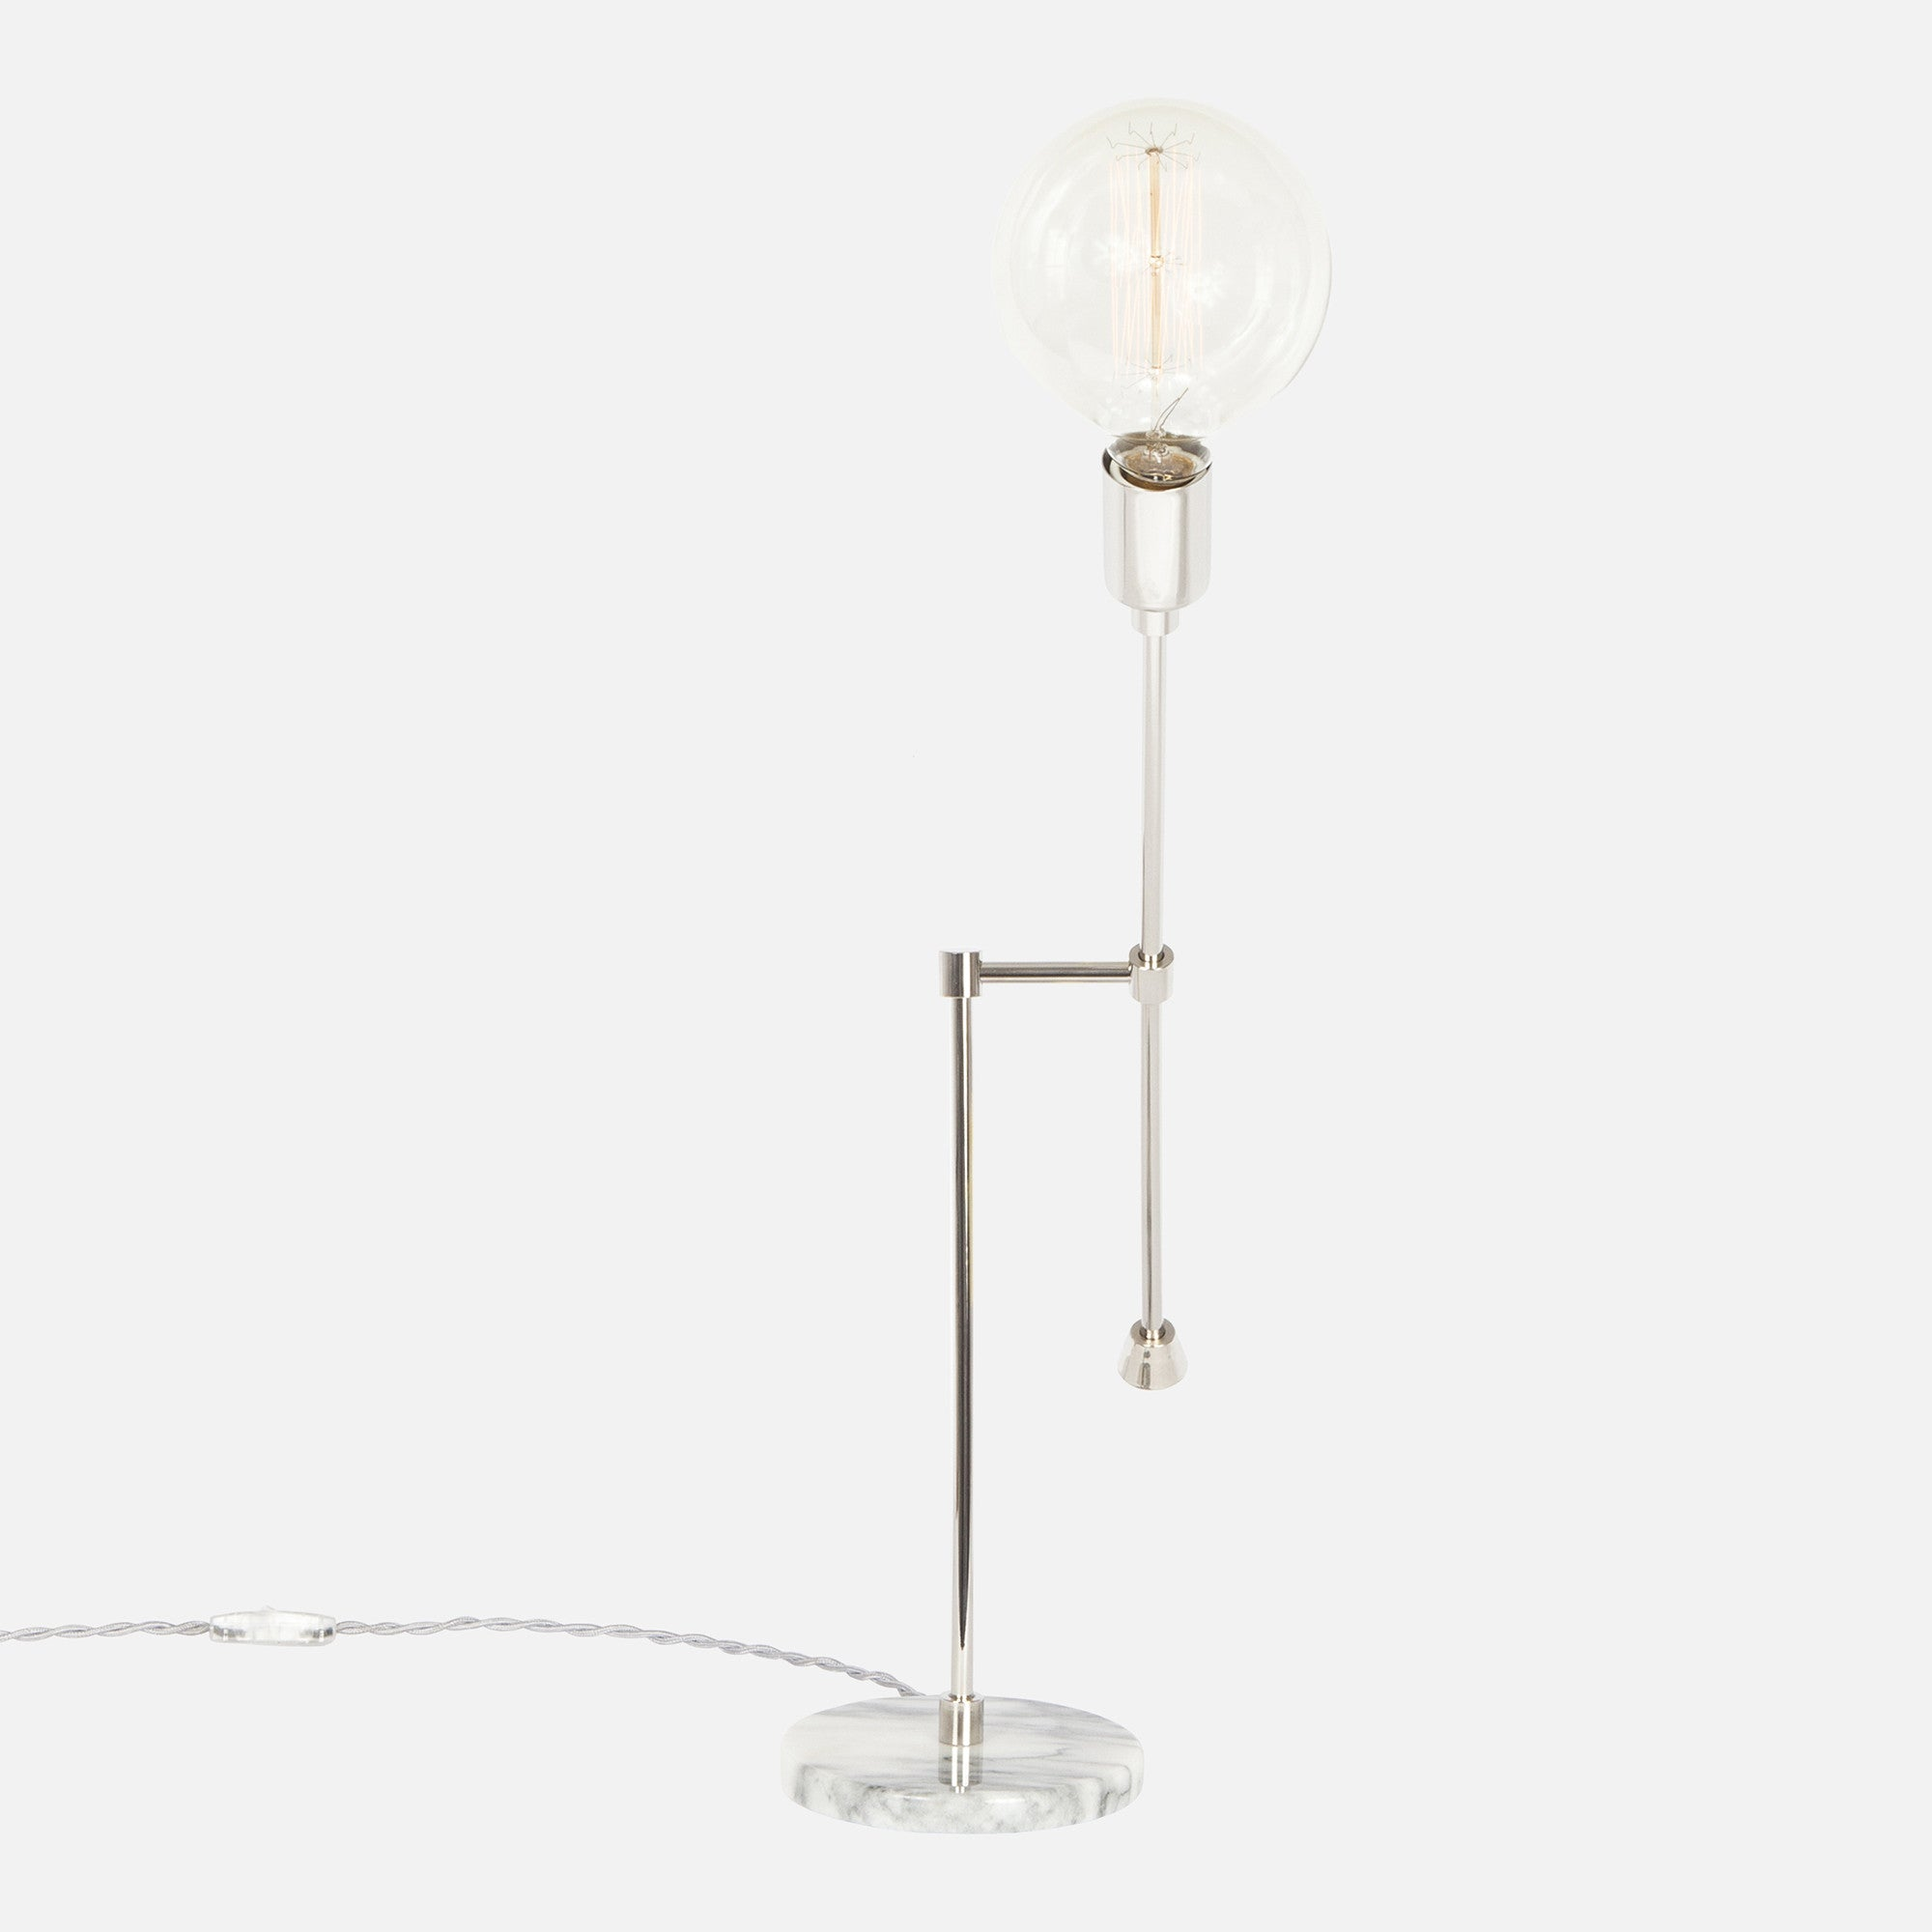 Counterbalance Bare Bulb Table Lamp Flea Market Rx